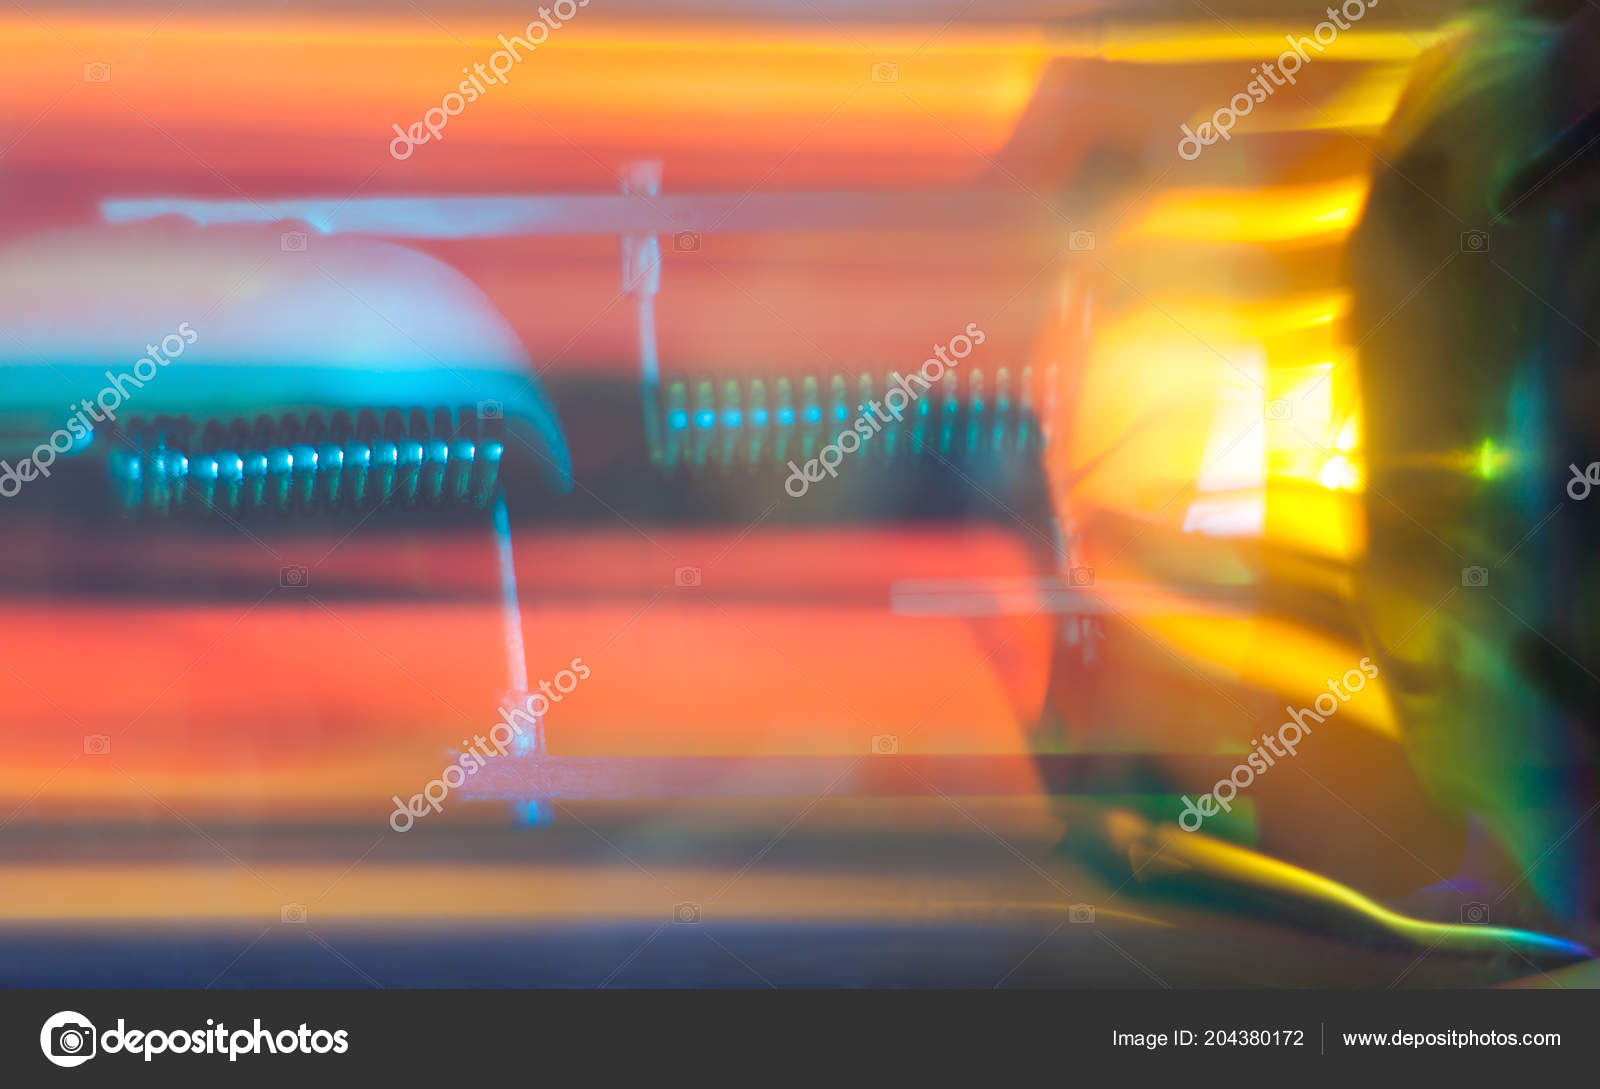 Fantastic Car Wallpaper Blurry Abstract Futuristic